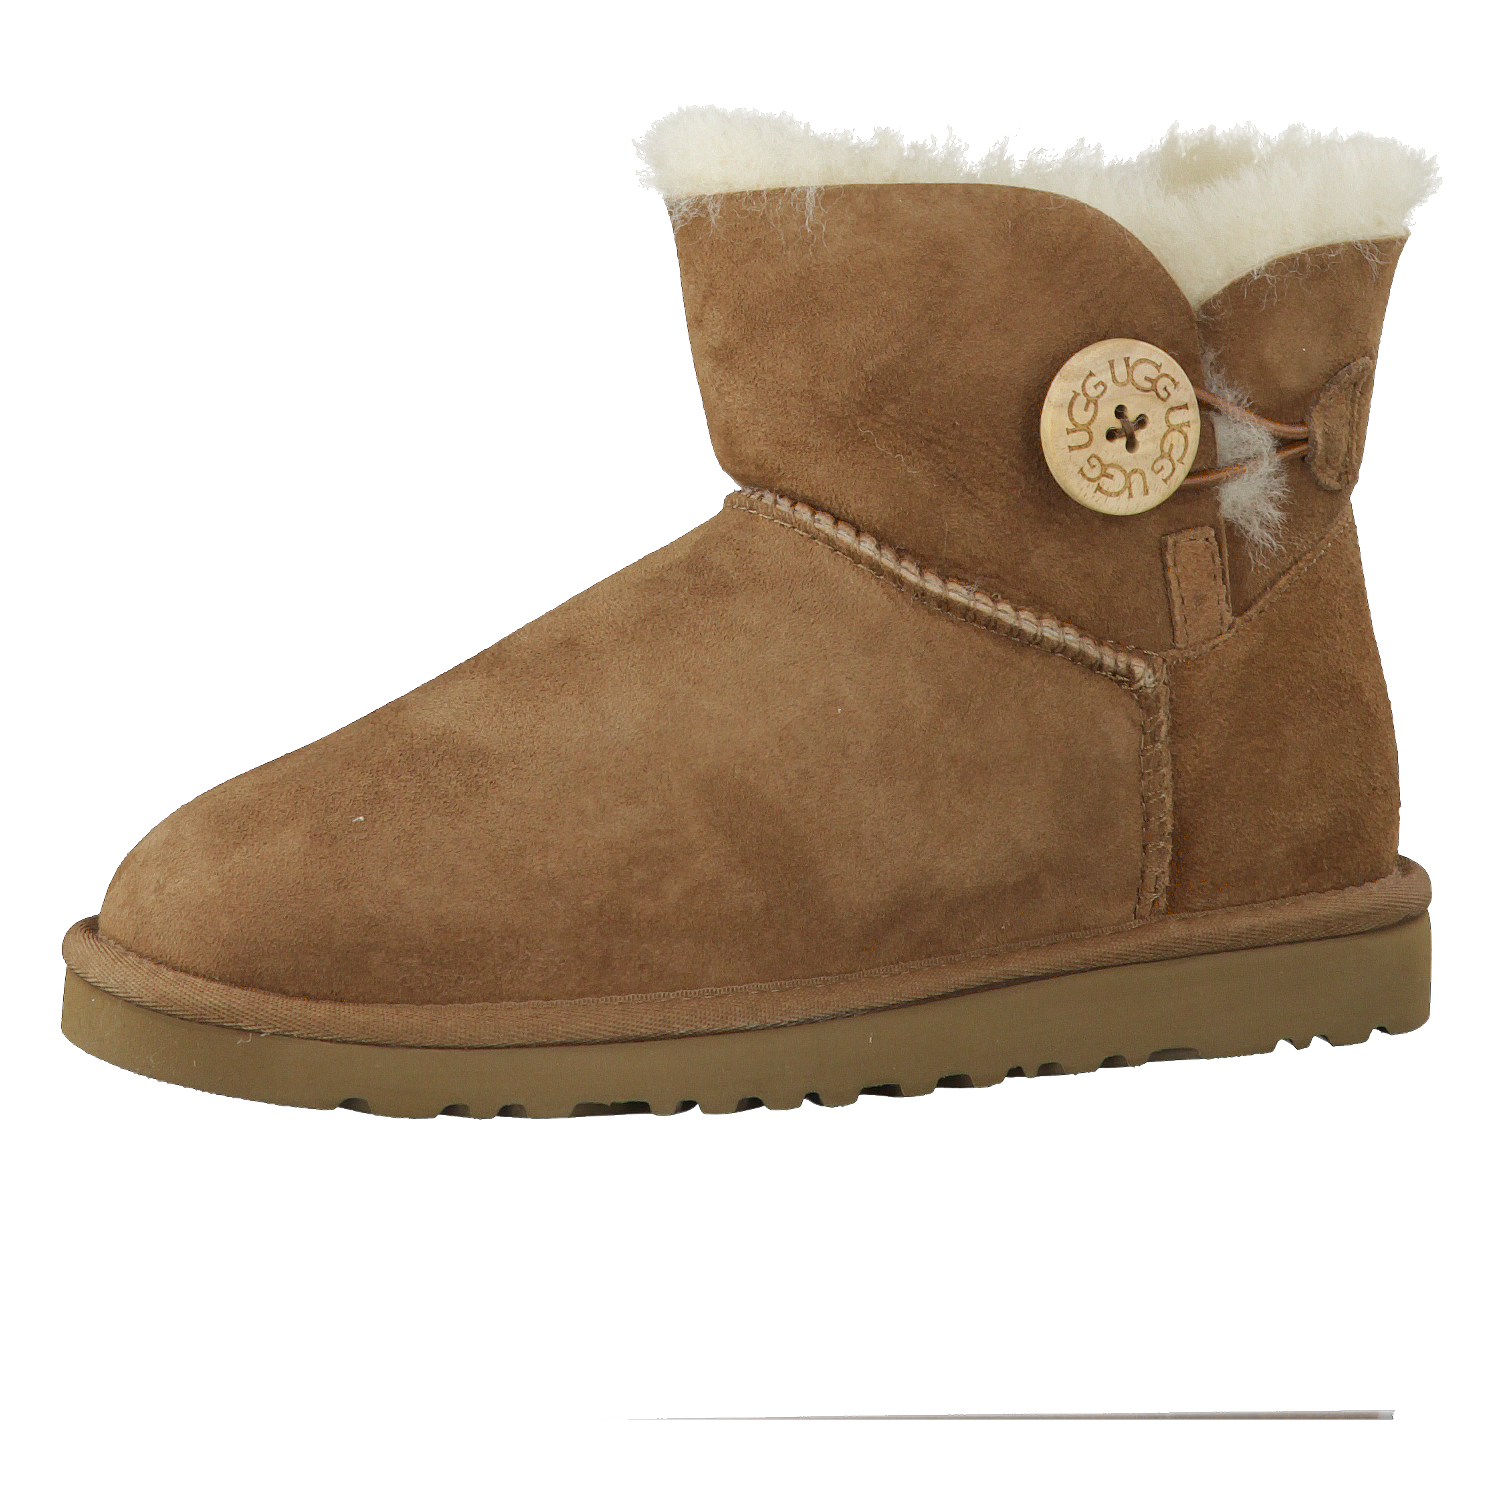 UGG Damen Mini Boots Bailey Button 3352-12S: Chestnut: 36